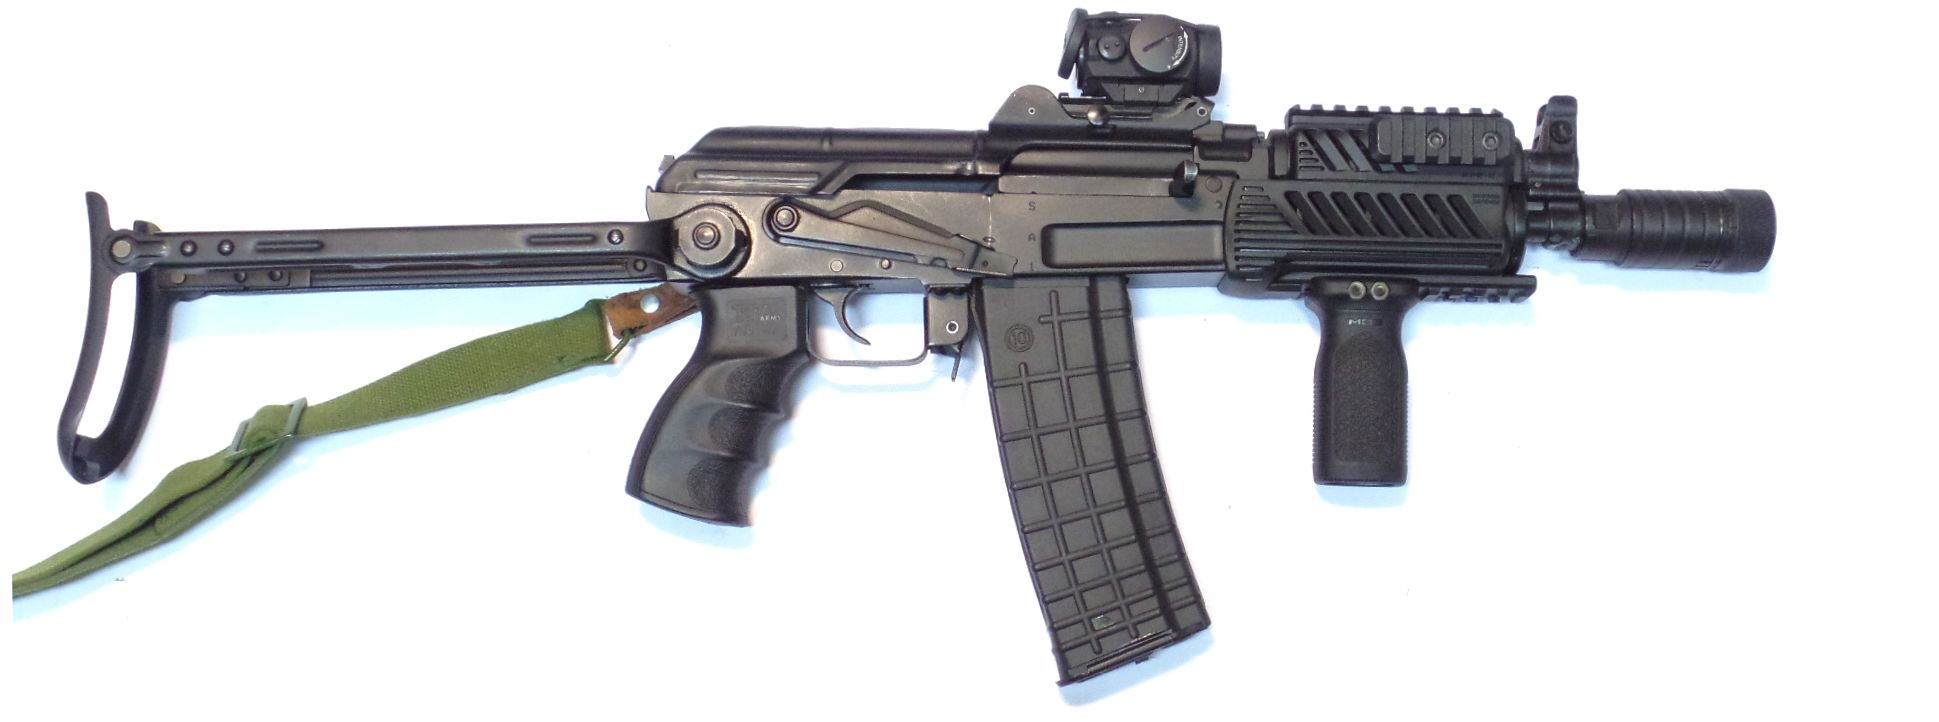 FAB Defense Garde main picatinny AKS74U